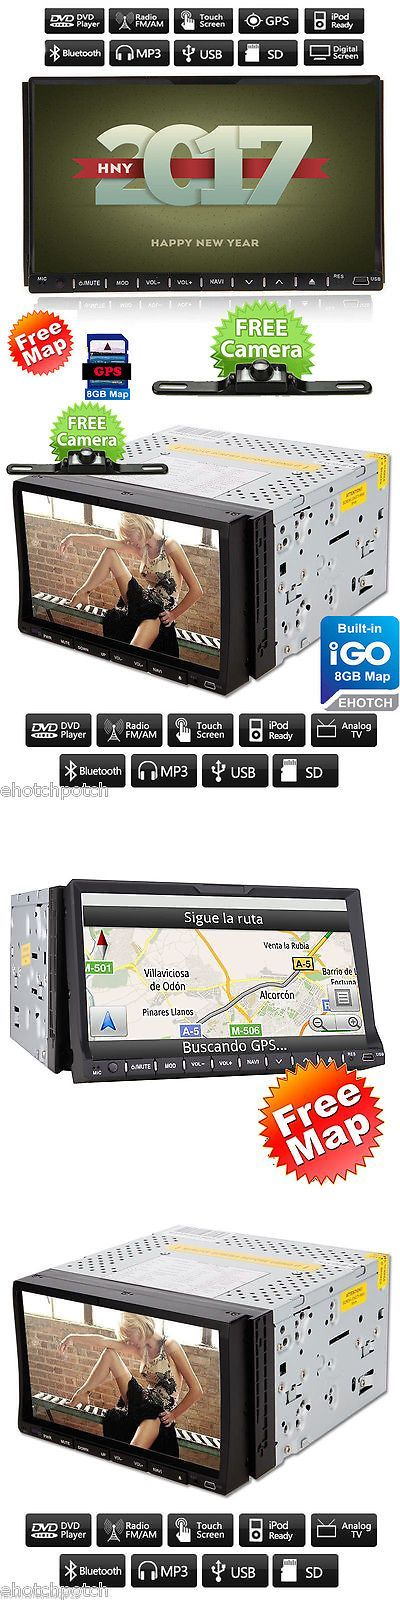 Vehicle Electronics And GPS: 7 2Din In Dash Car Radio Stereo Dvd Cd Player Gps Navigation+Map Tv+Bt+Camera -> BUY IT NOW ONLY: $104.99 on eBay!